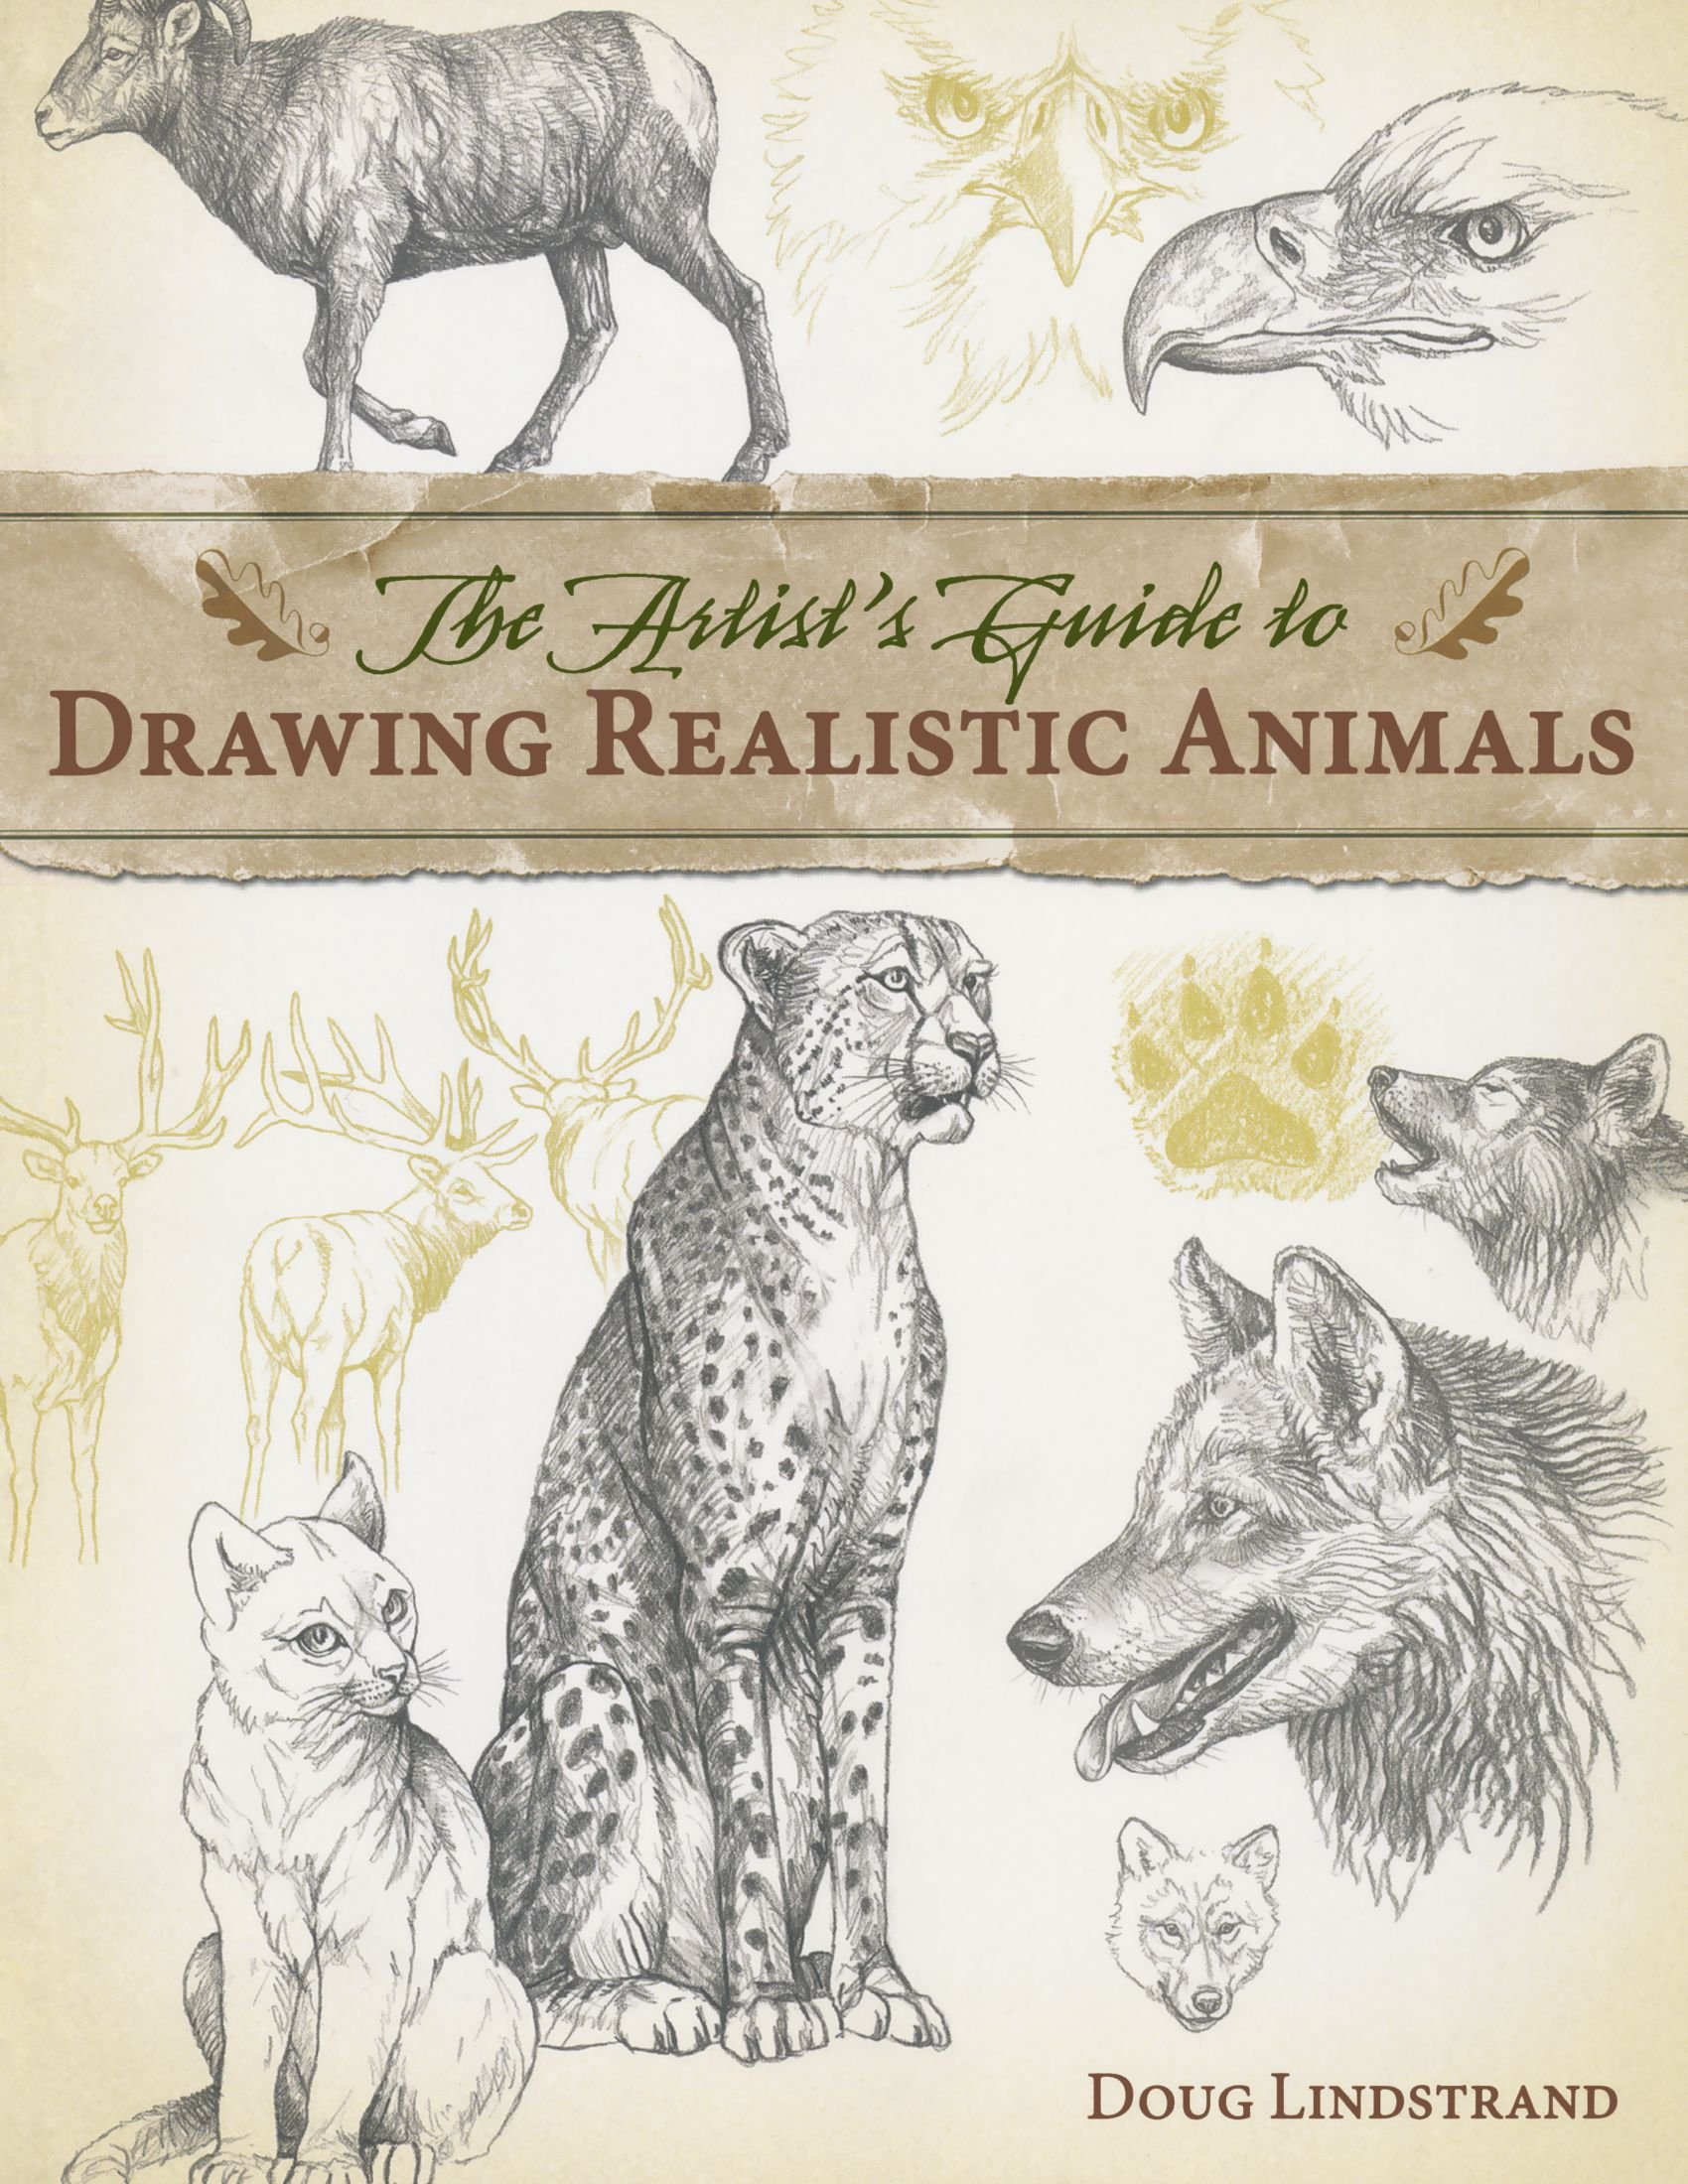 The artists guide to drawing realistic animals doug lindstrand 0035313334009 amazon com books